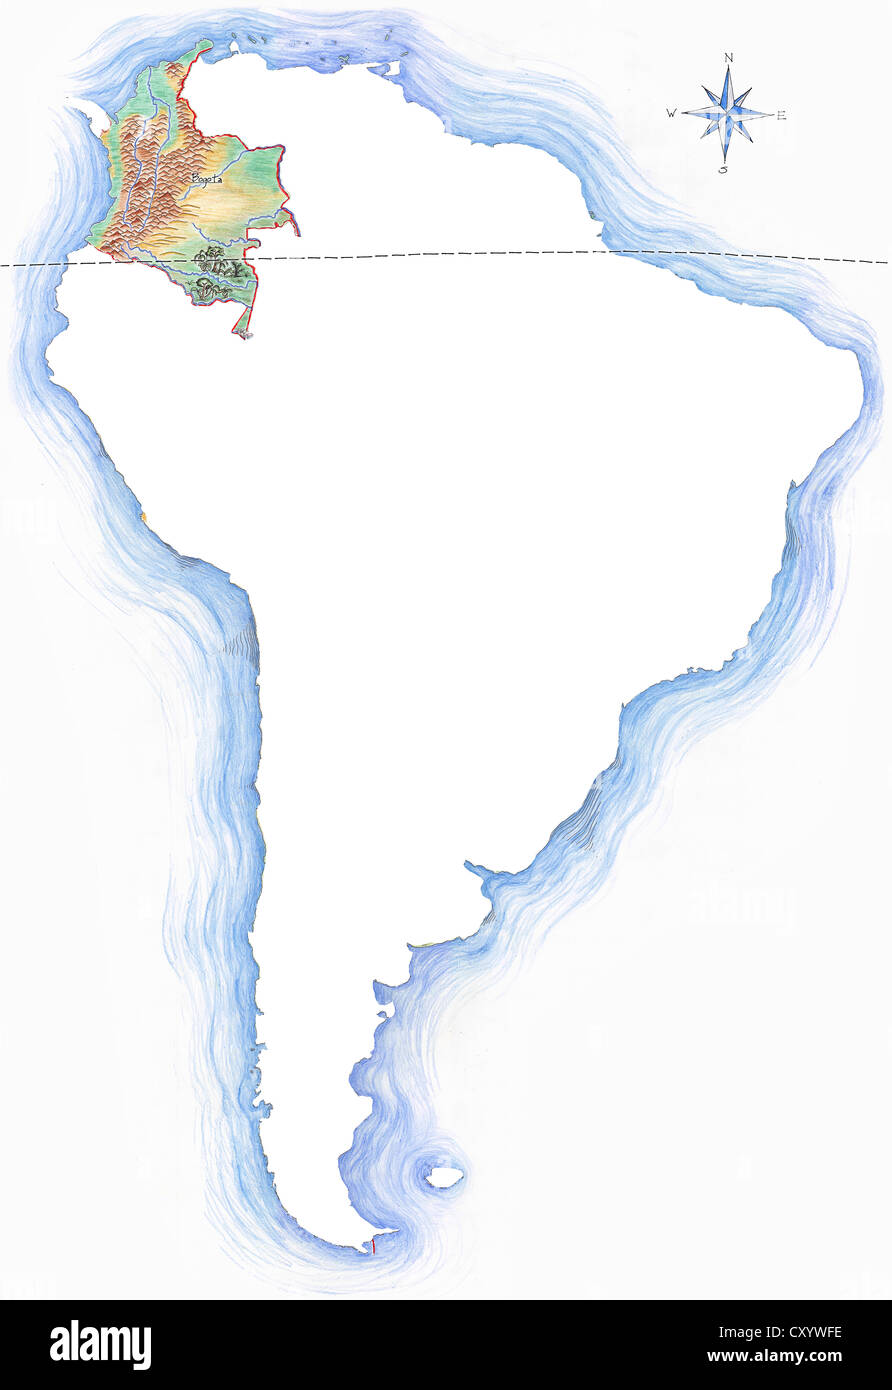 Highly detailed hand drawn map of colombia within the outline of highly detailed hand drawn map of colombia within the outline of south america with a compass rose and the equator gumiabroncs Image collections